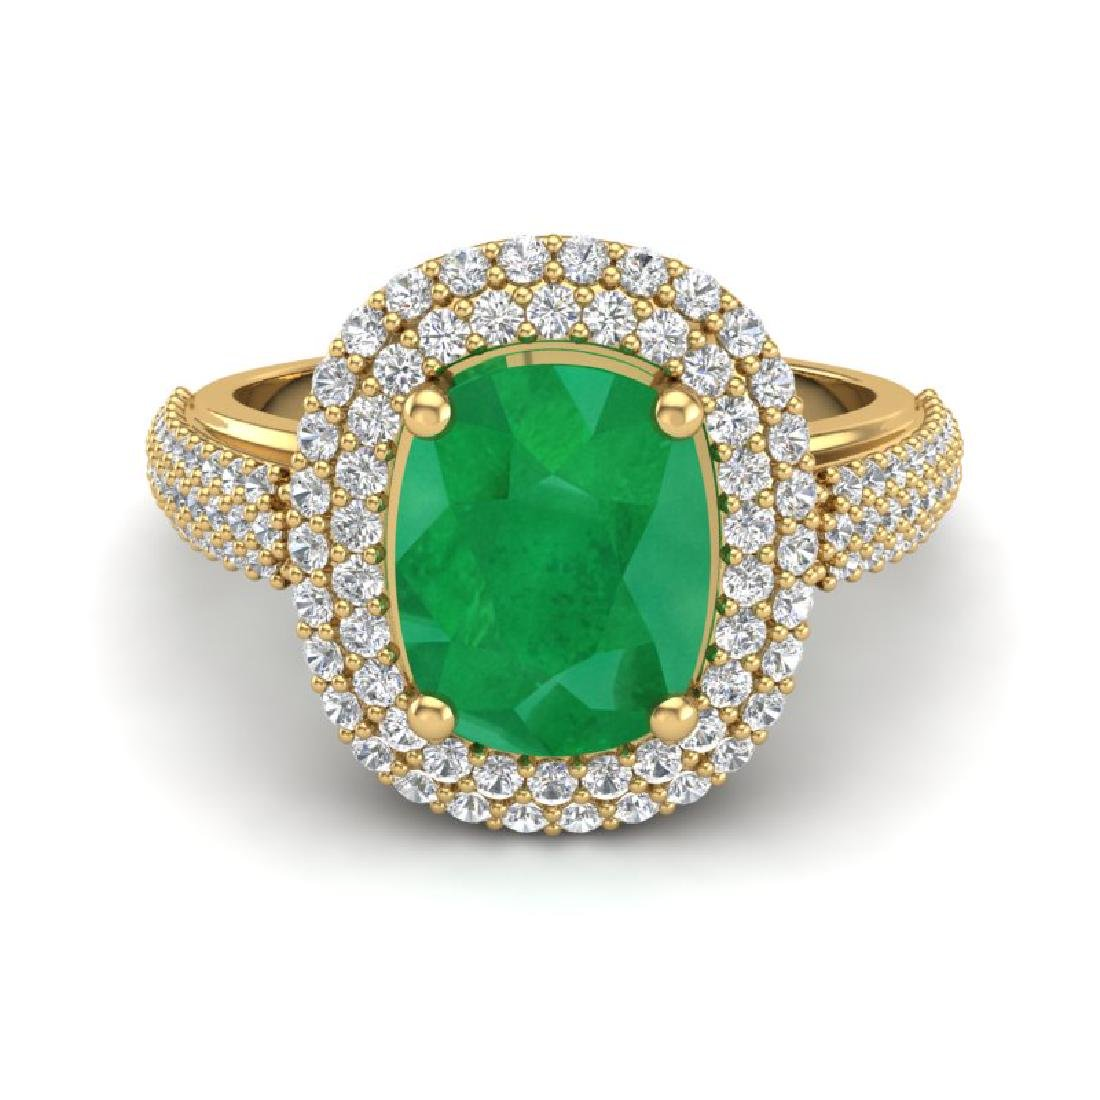 3.50 CTW Emerald & Micro Pave VS/SI Diamond Halo Ring